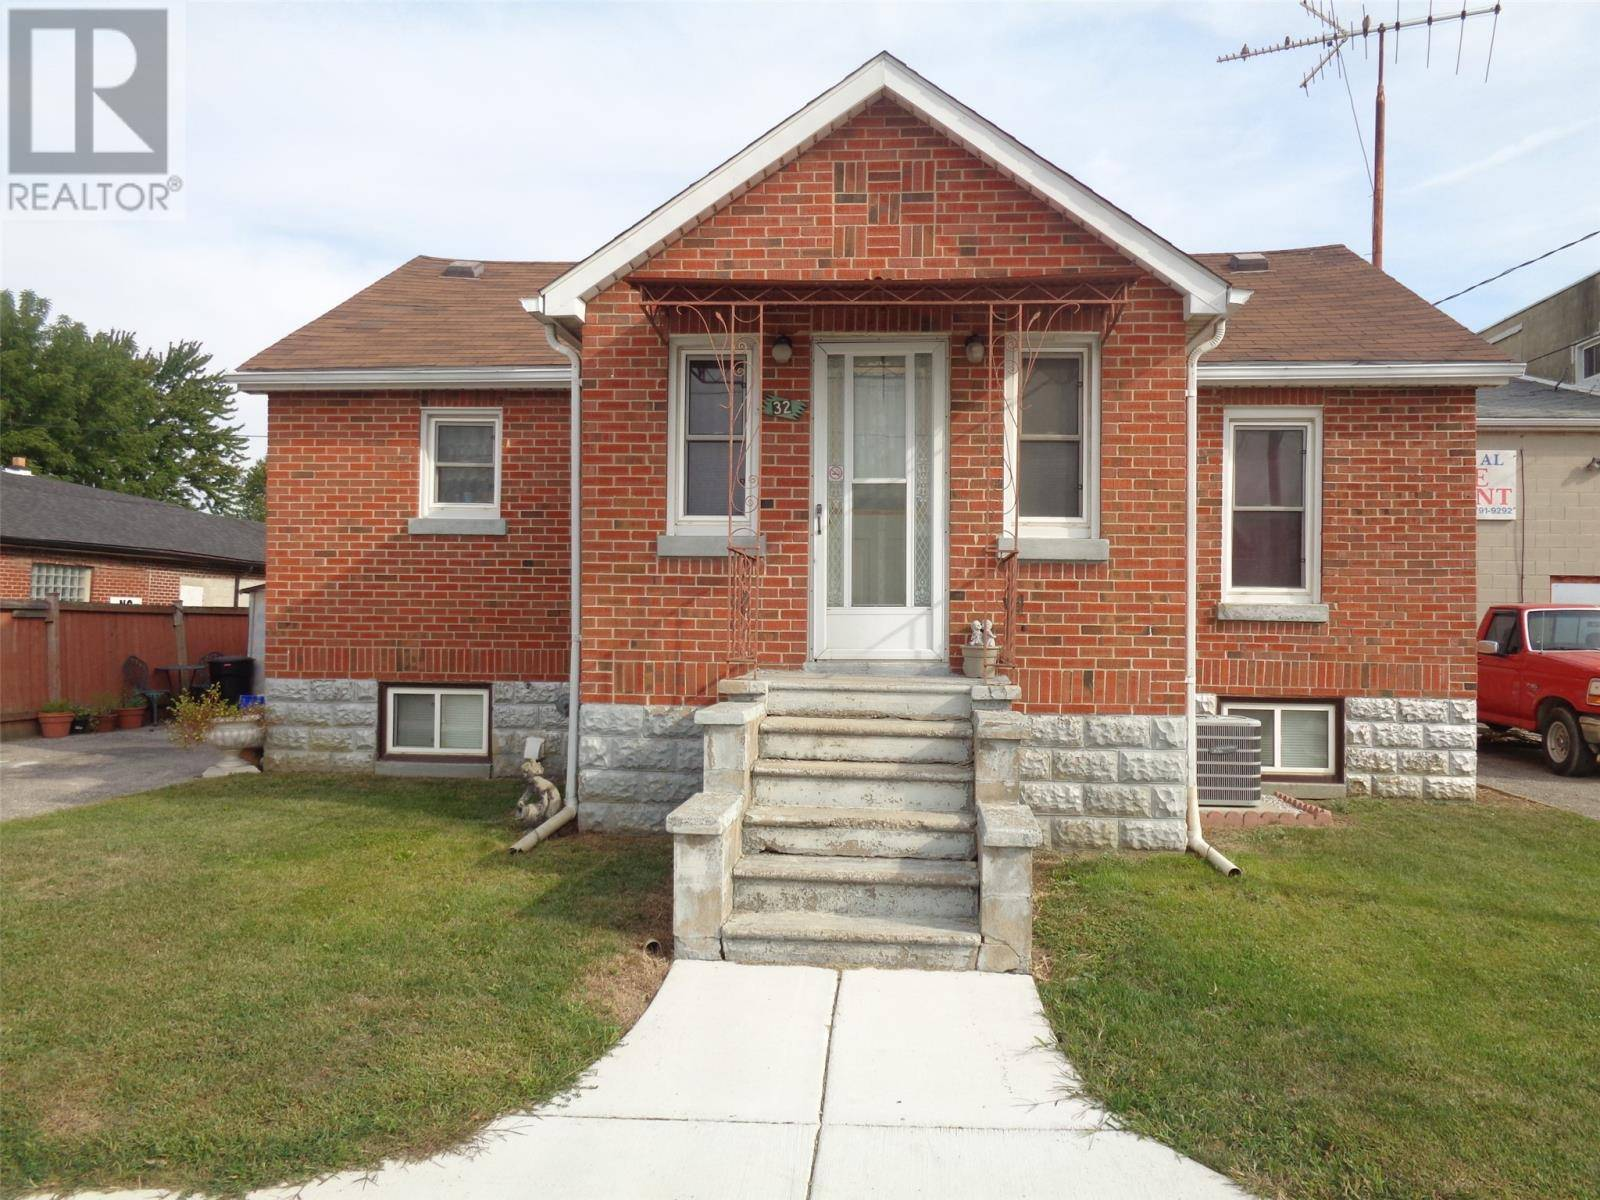 House for sale at 32 Centre St West Harrow Ontario - MLS: 19025053